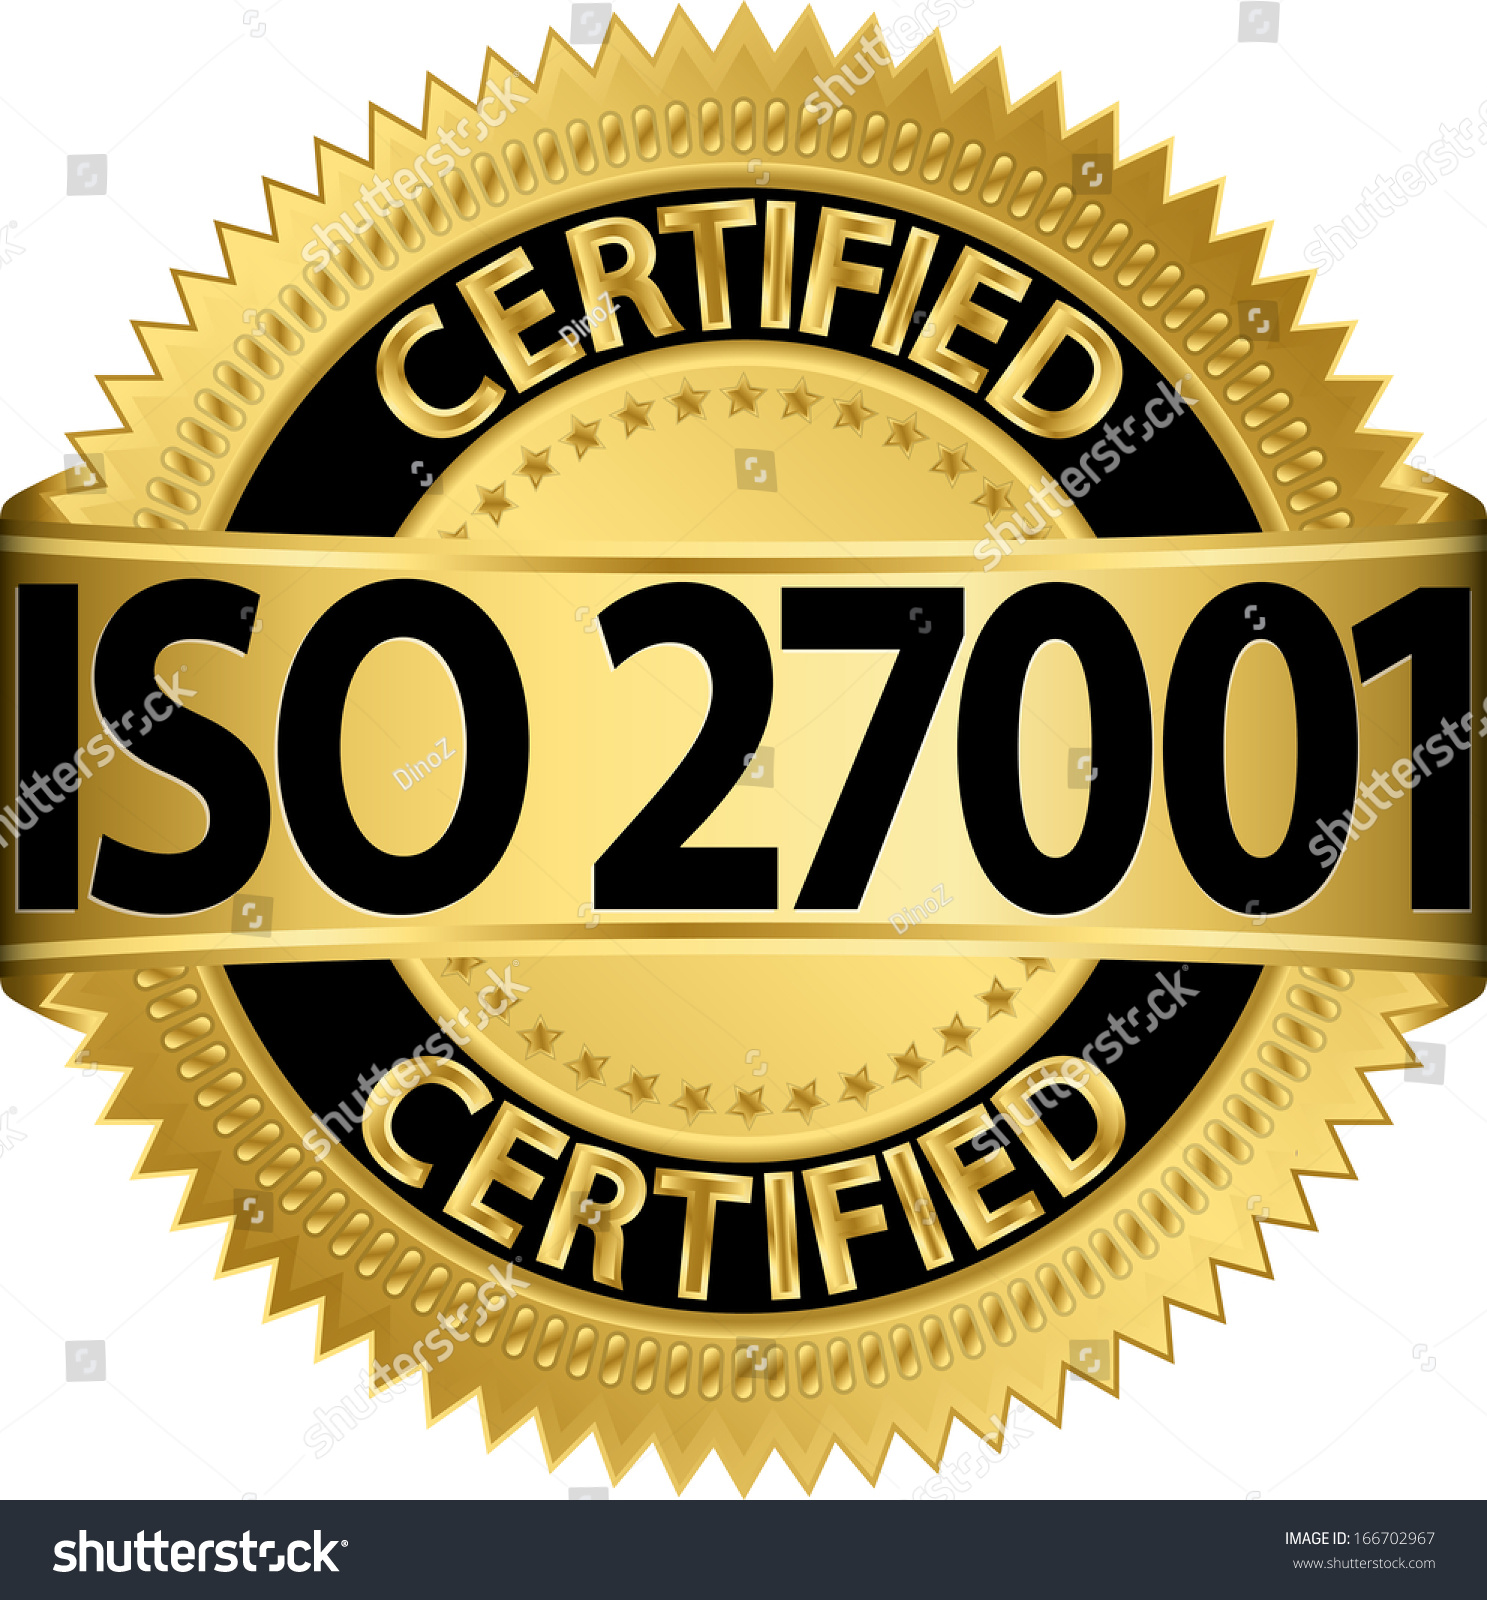 how to become iso 27001 certified